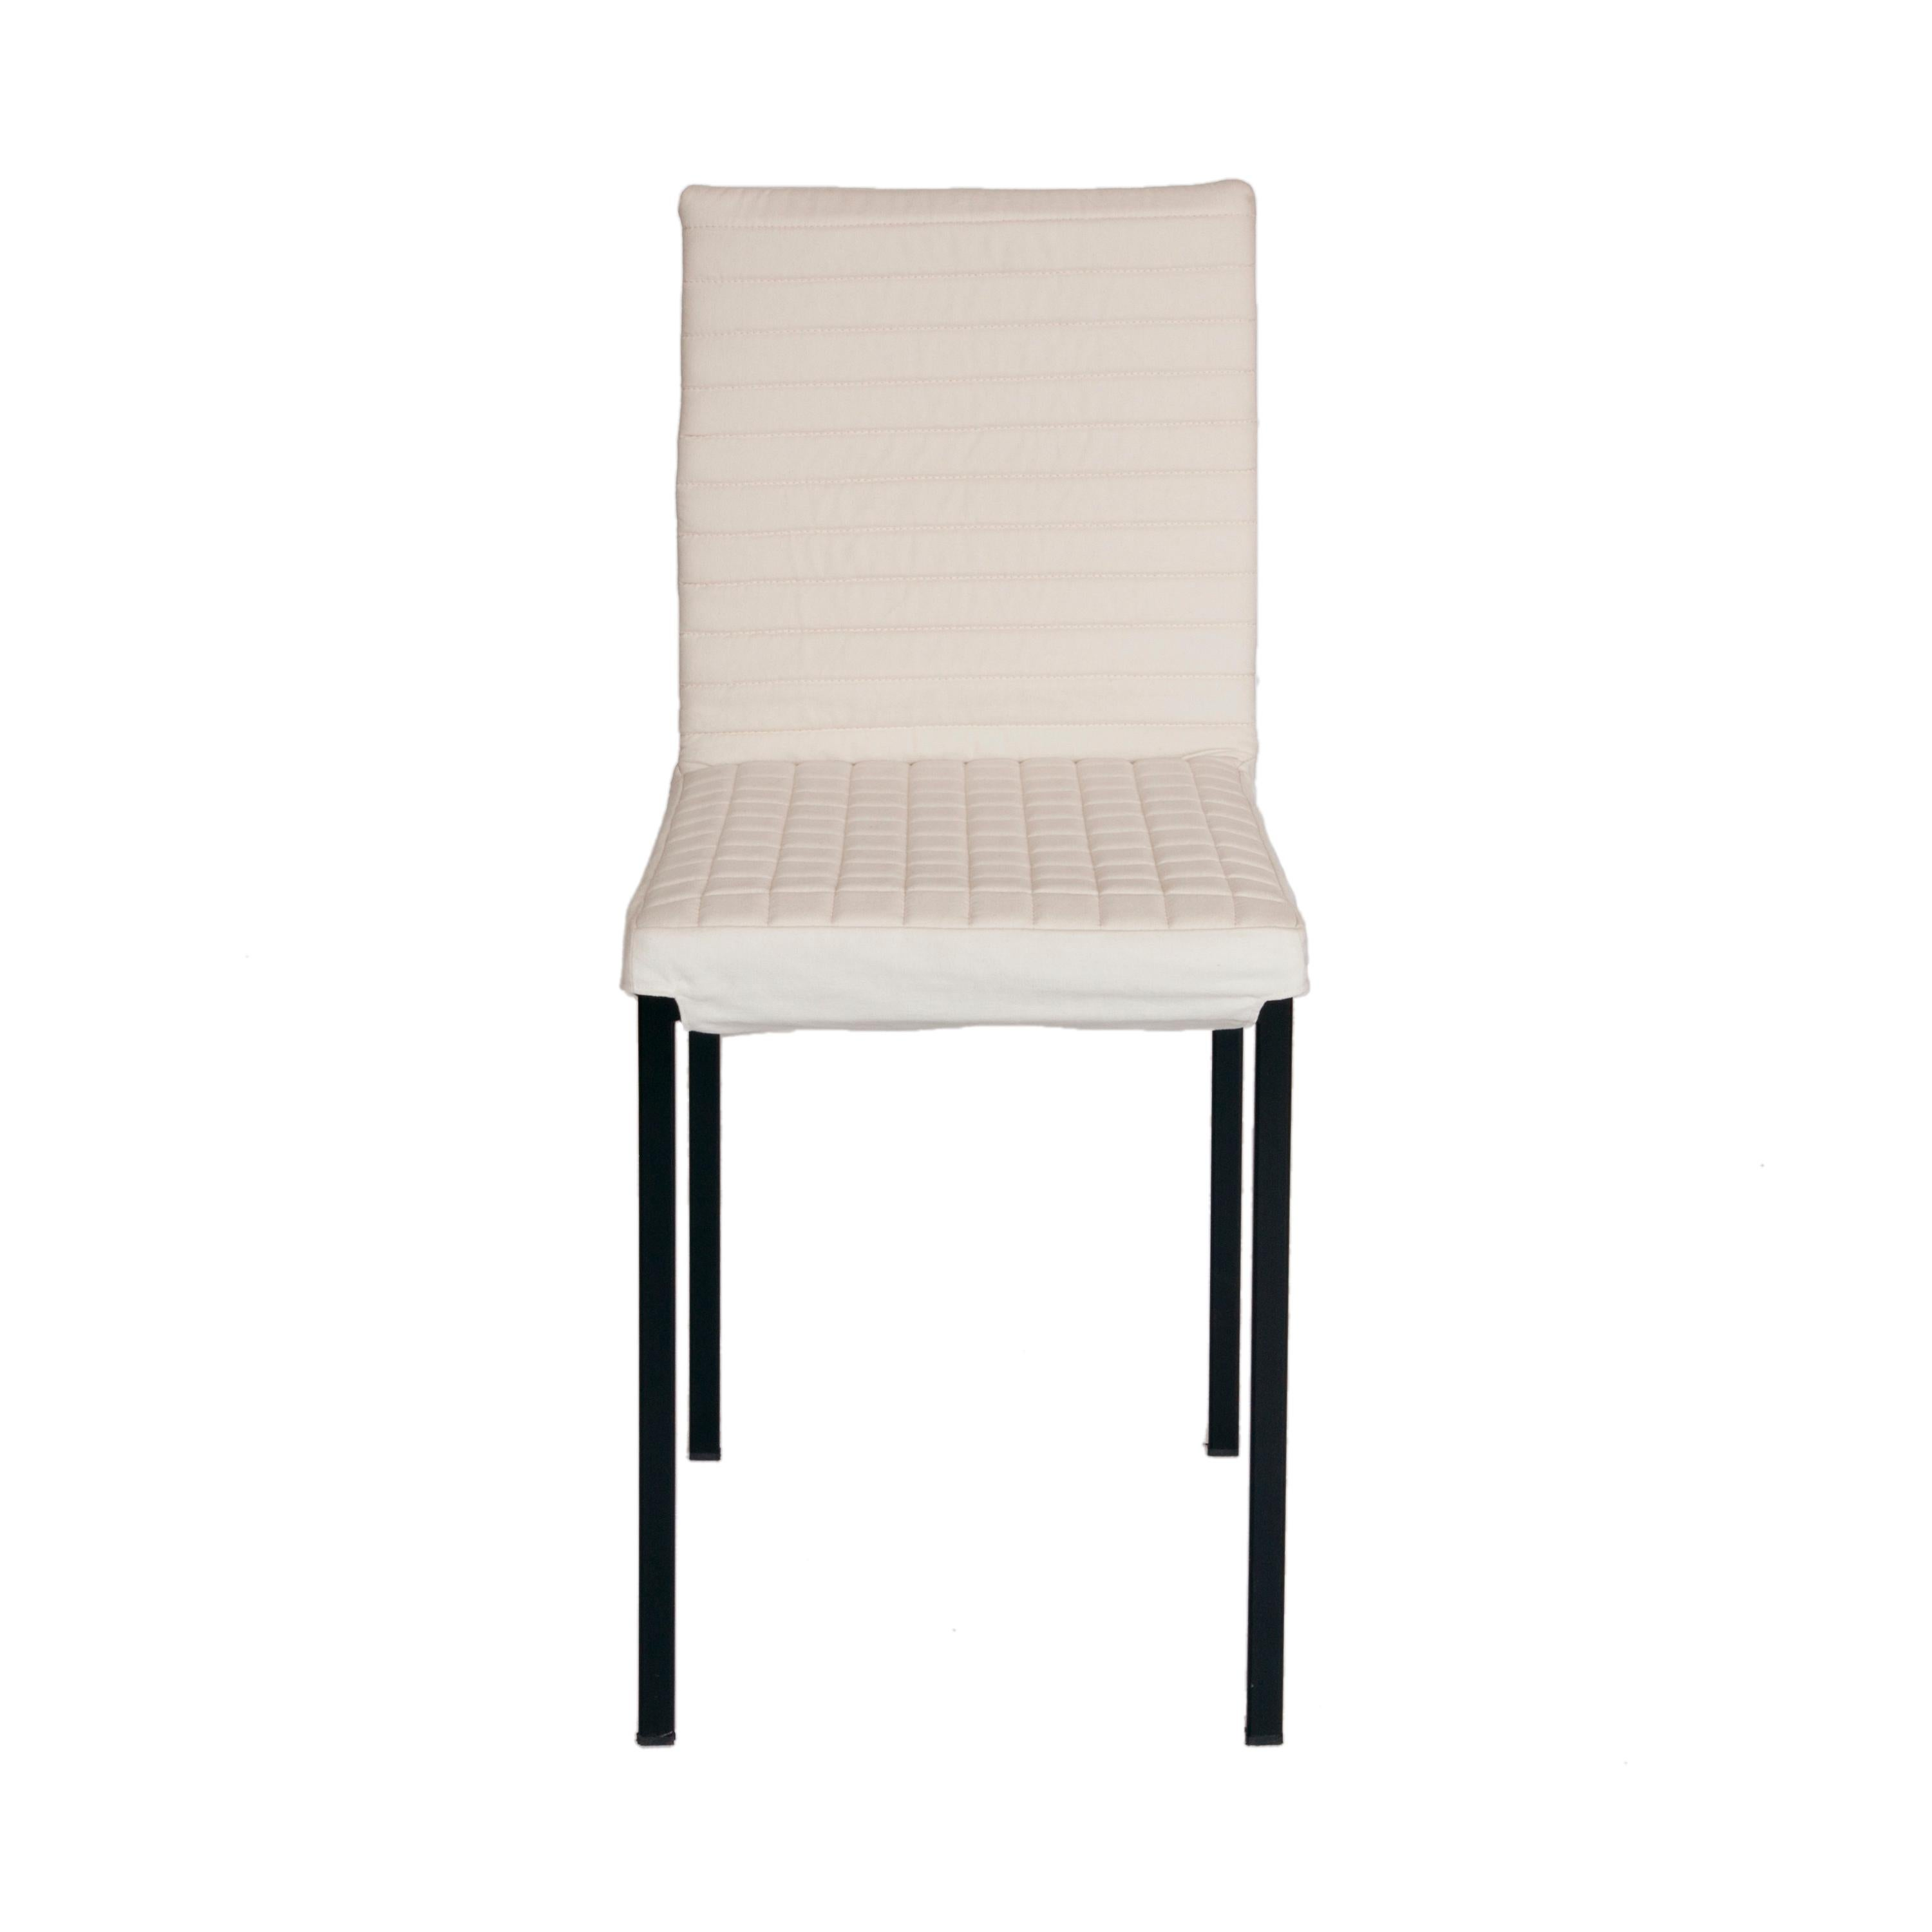 Contemporary Tanit Soft Chair with White Linen Cover